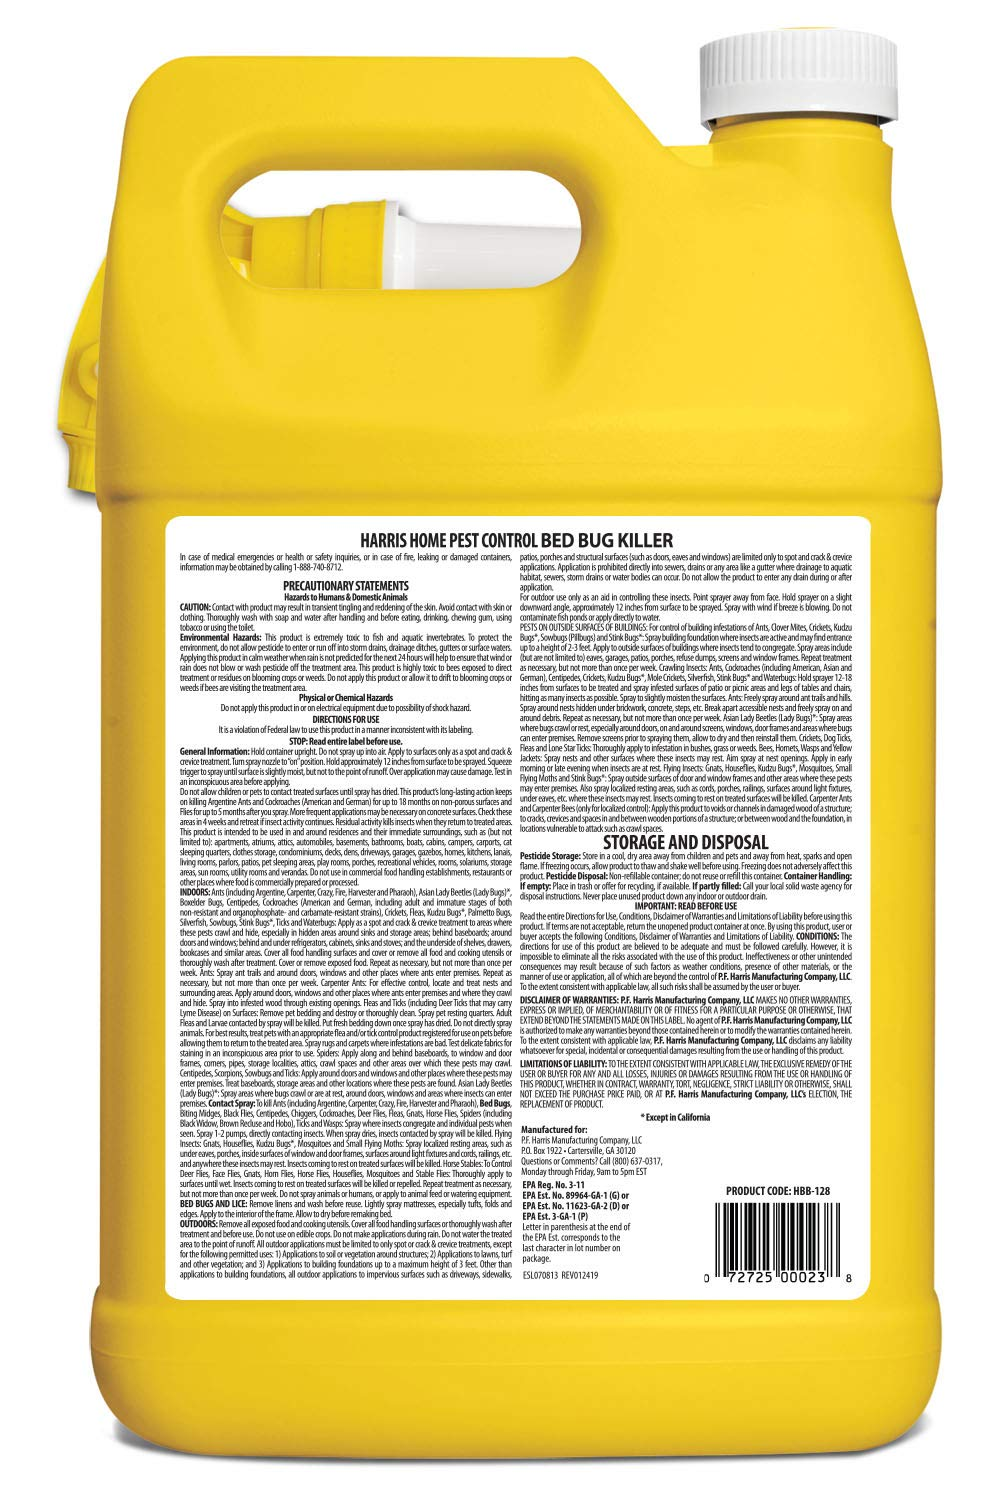 Back label for directions to use Harris bed bug killer spray